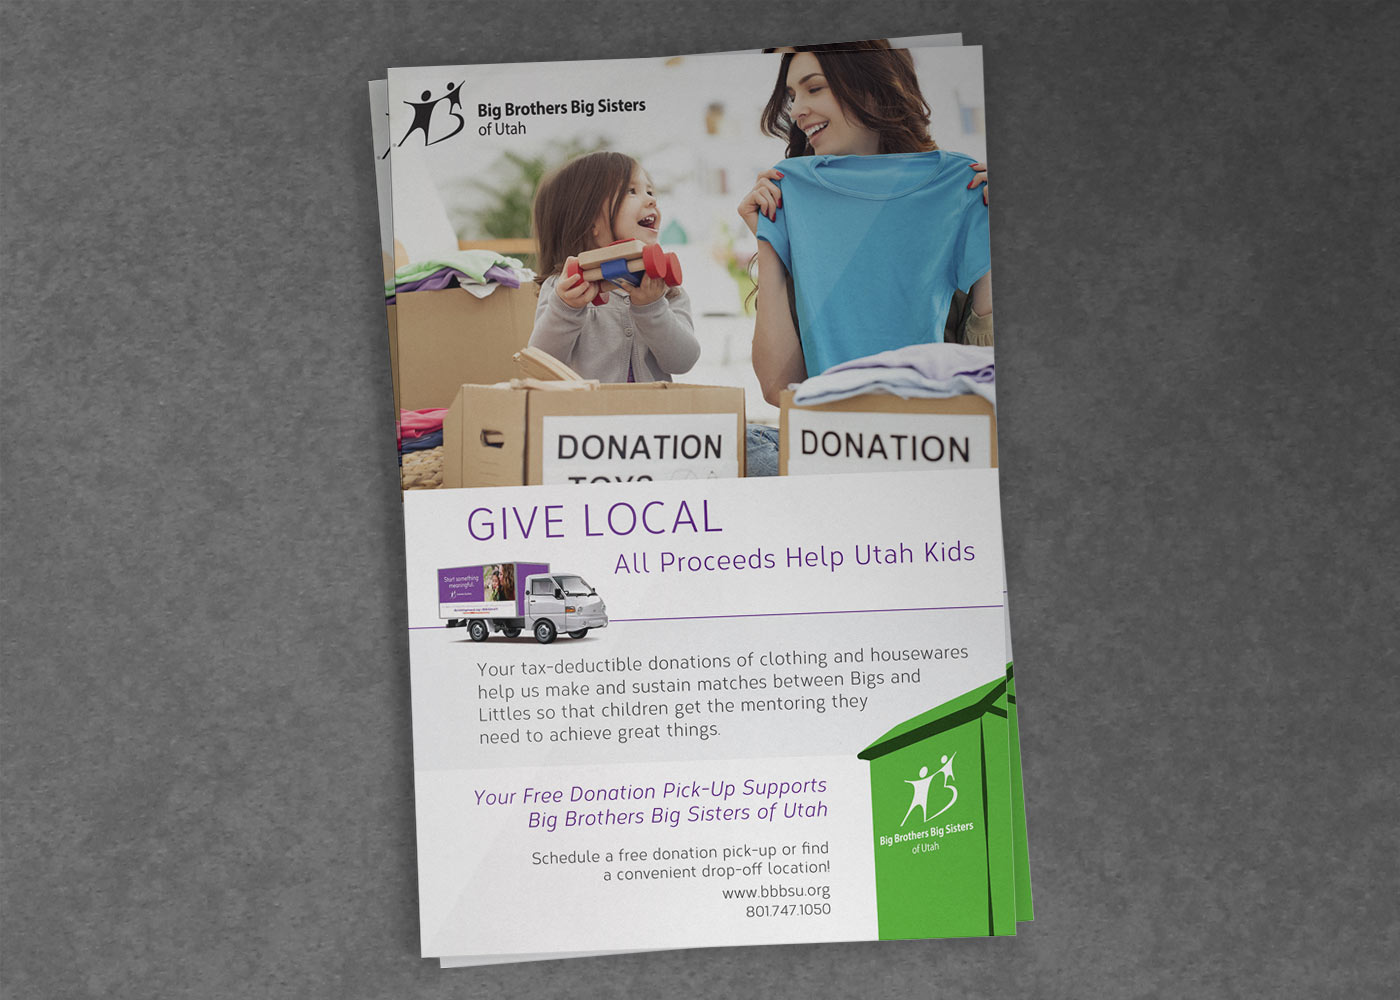 Print collateral and advertising for nonprofits